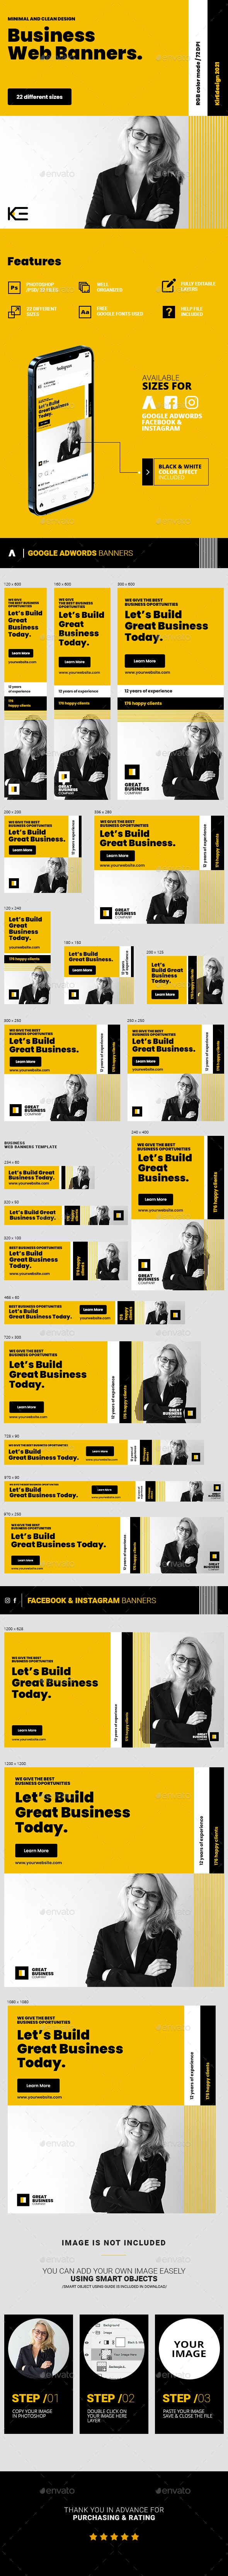 Business Web Banners - Banners & Ads Web Elements